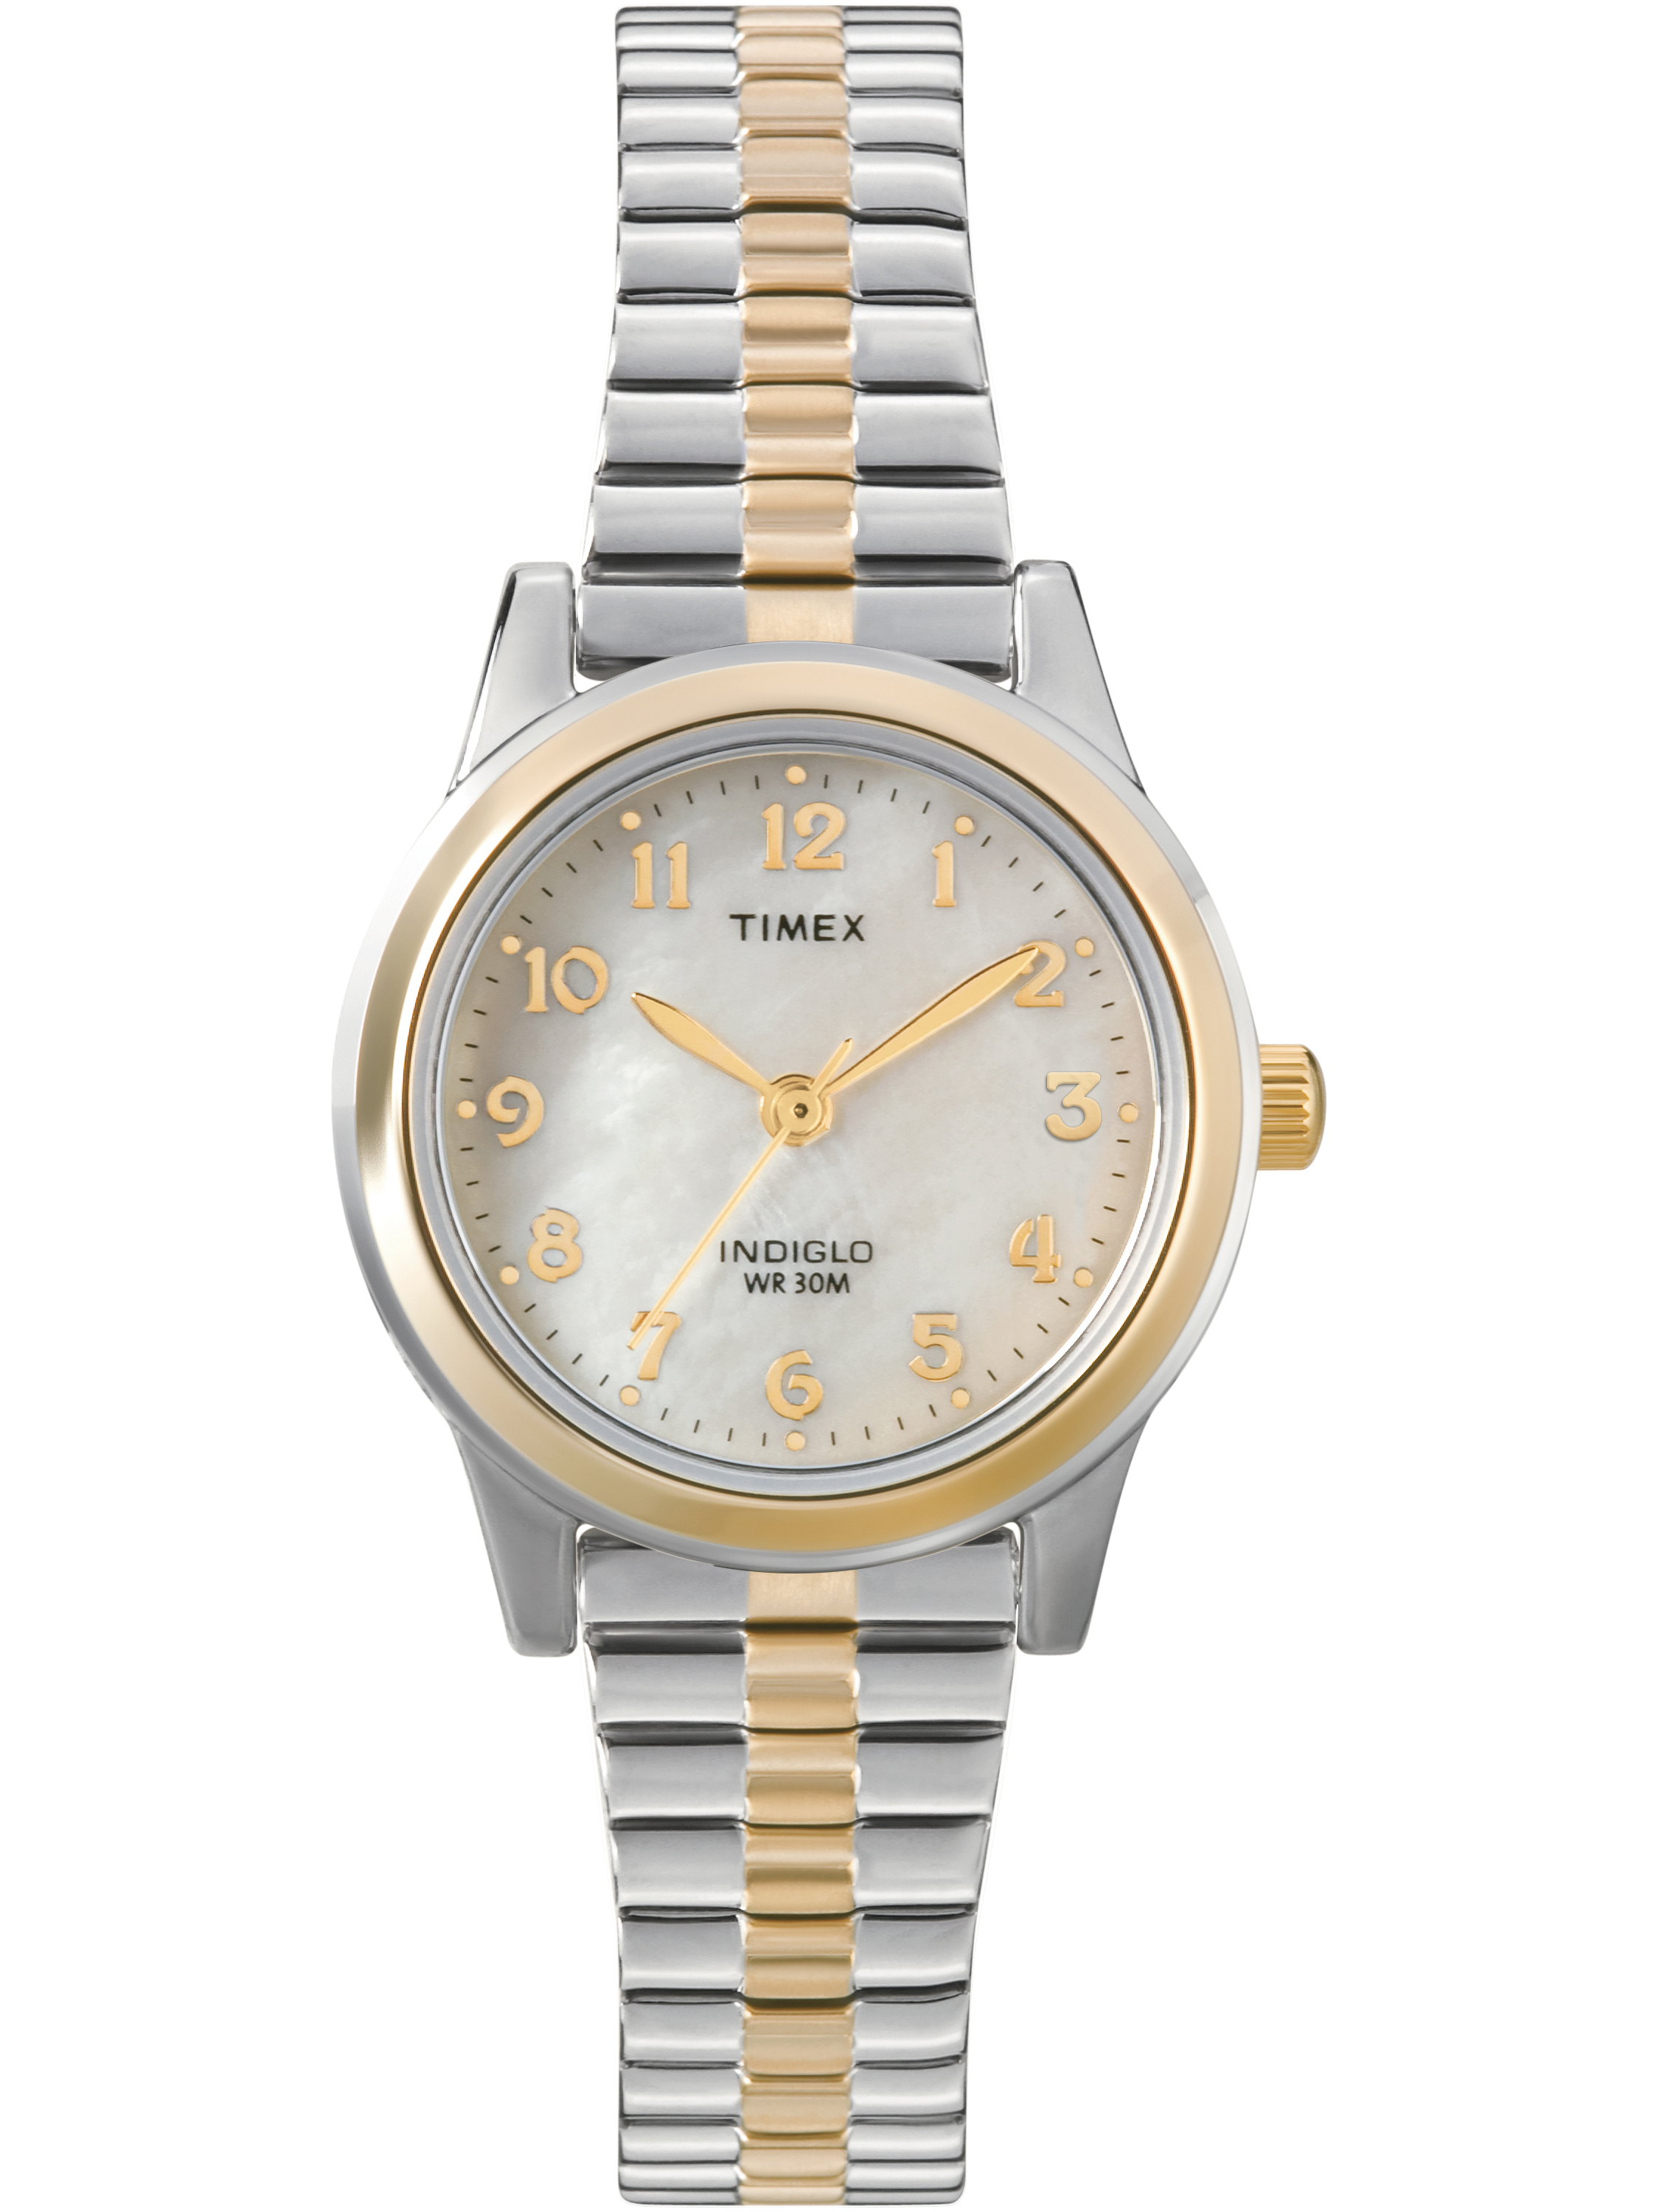 Timex Women's Essex Avenue Watch, Two-Tone Extra Long Stainless Steel Expansion Band by Timex